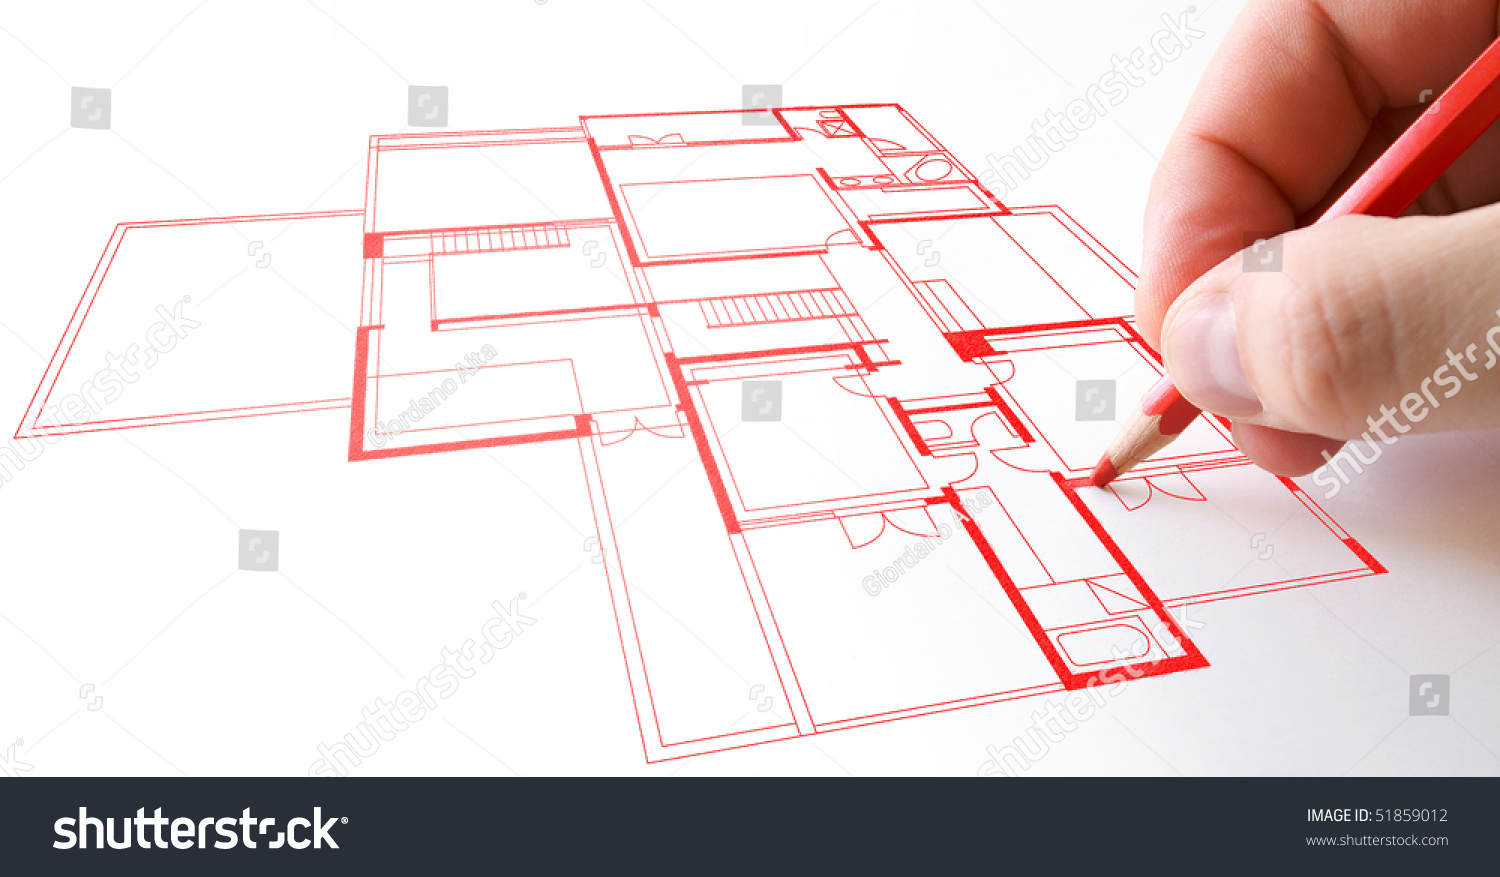 How To Draw A House Plan. House plan drawing